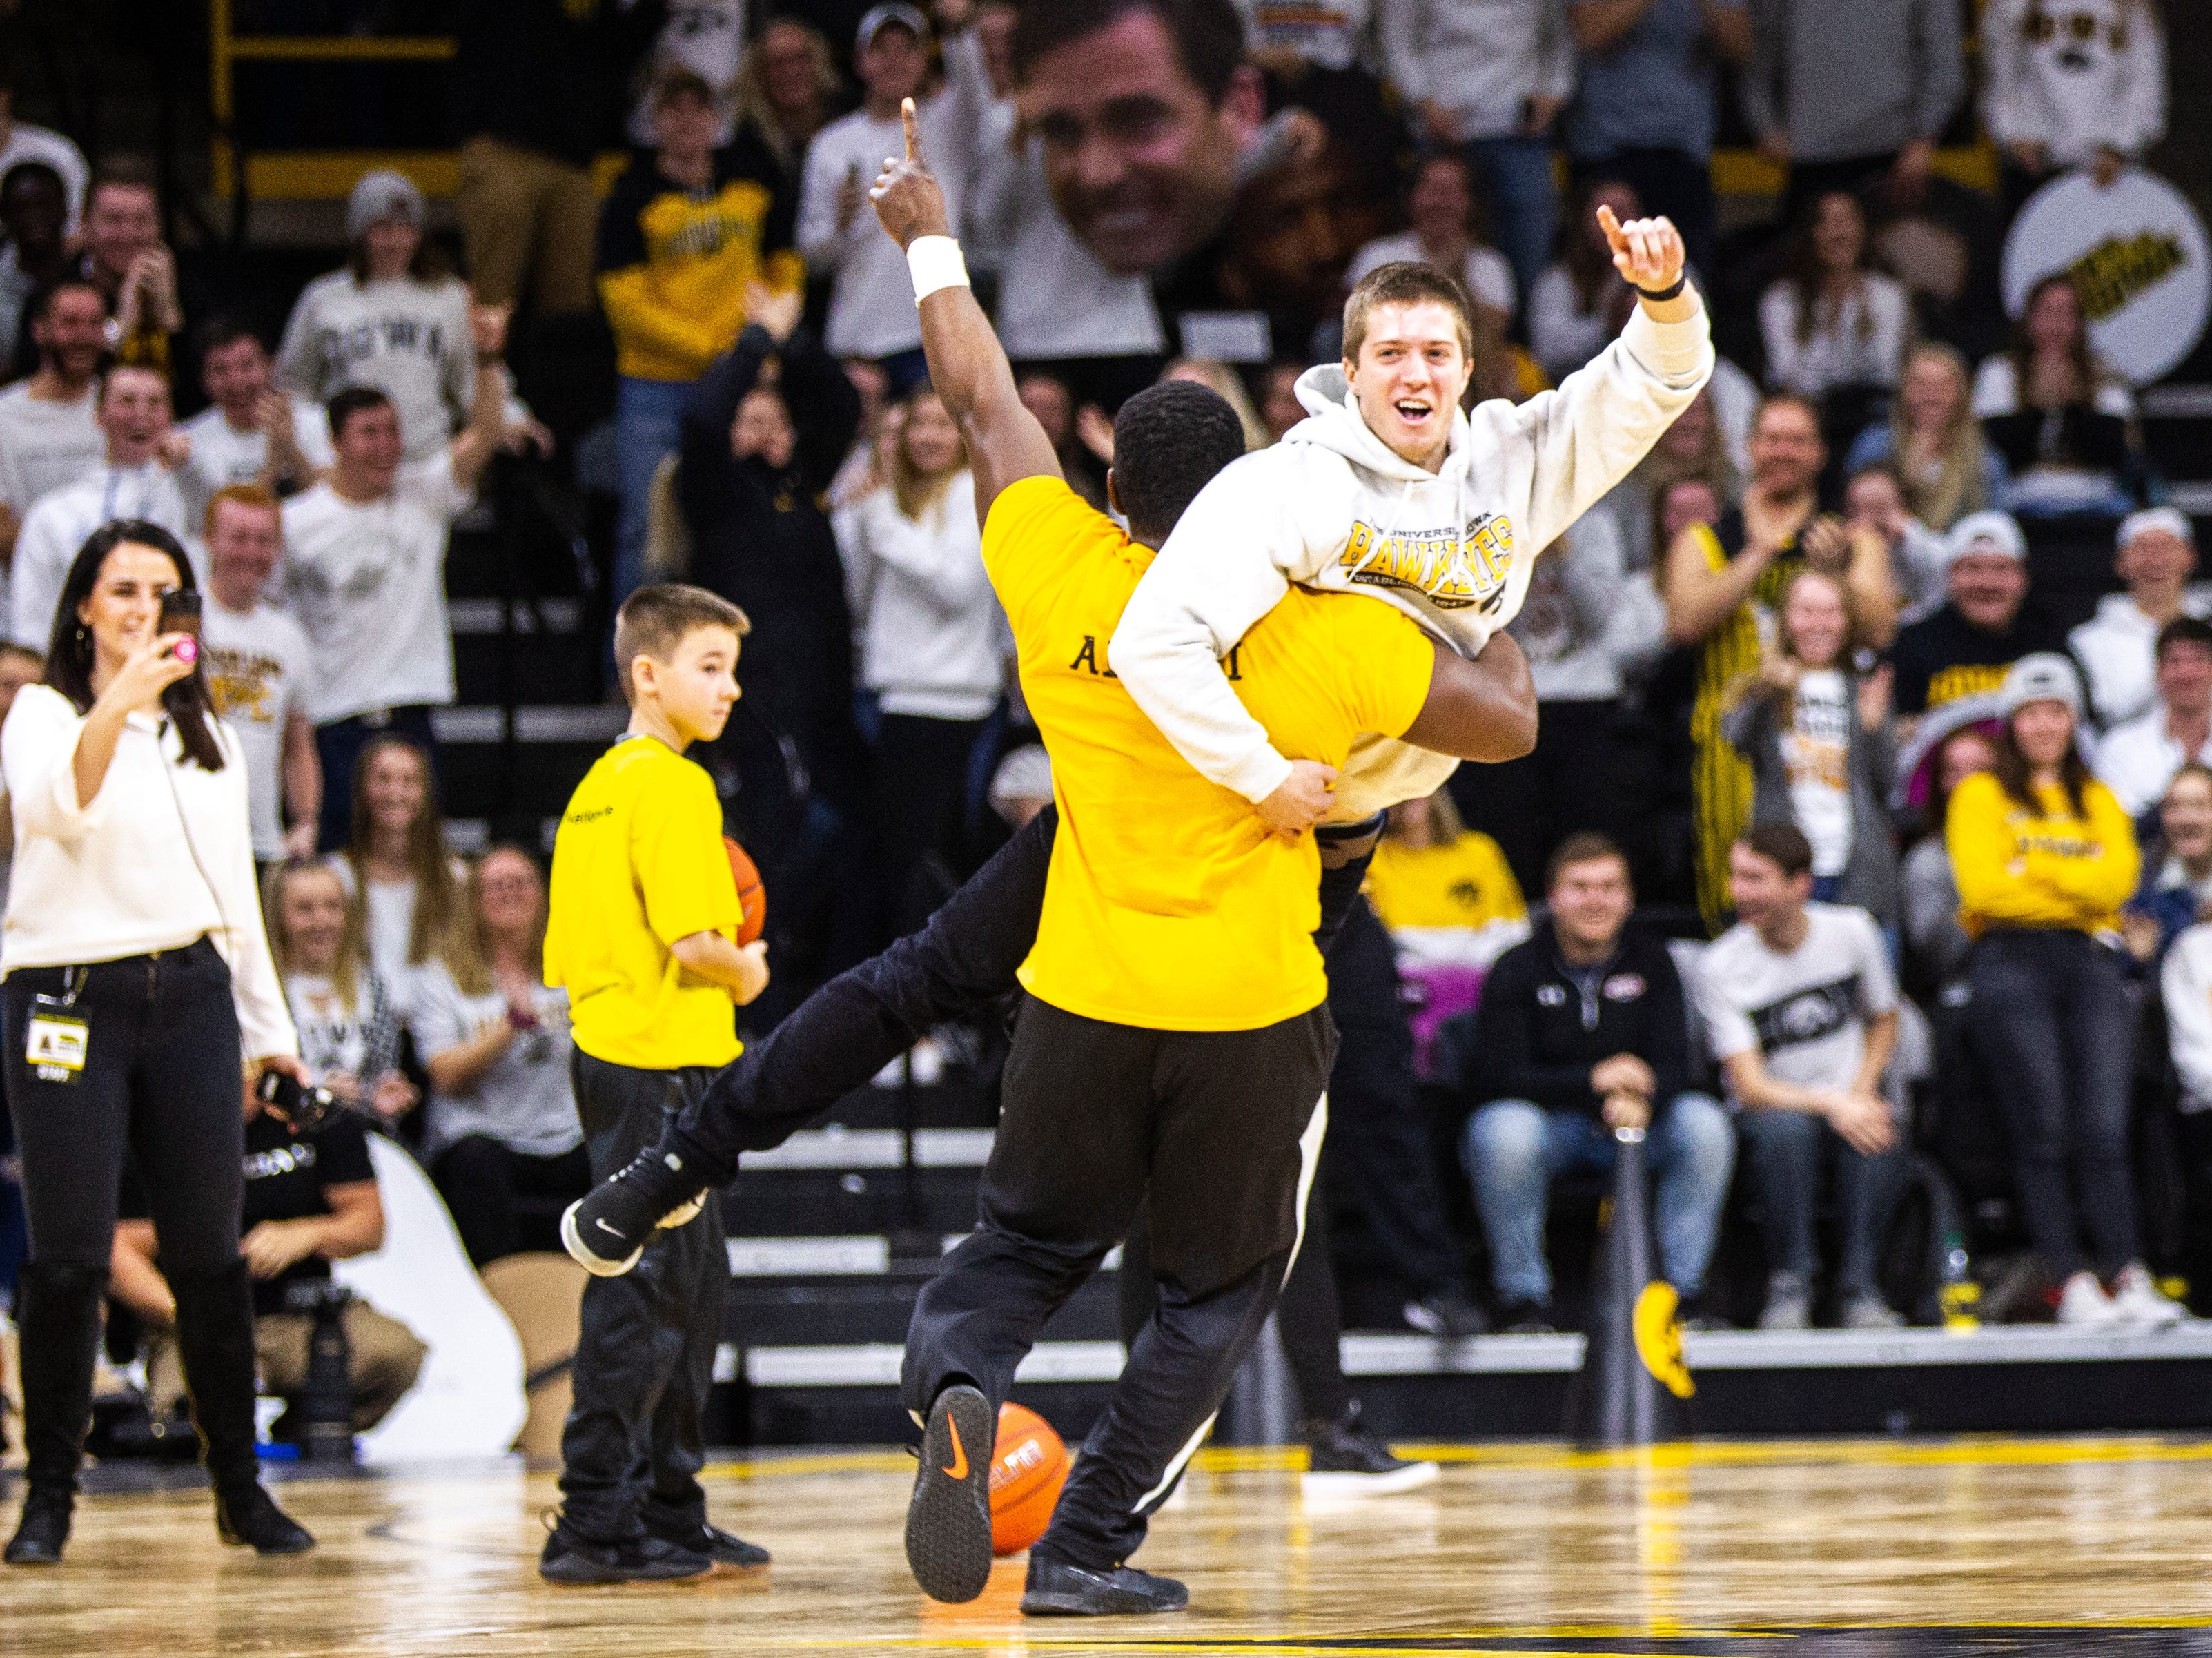 University of Iowa student Eric Huber is embraced by alumni  spirit squad member Oz Agbese after making a half-court shot during a NCAA Big Ten Conference men's basketball game on Sunday, Jan. 20, 2019, at Carver-Hawkeye Arena in Iowa City, Iowa.